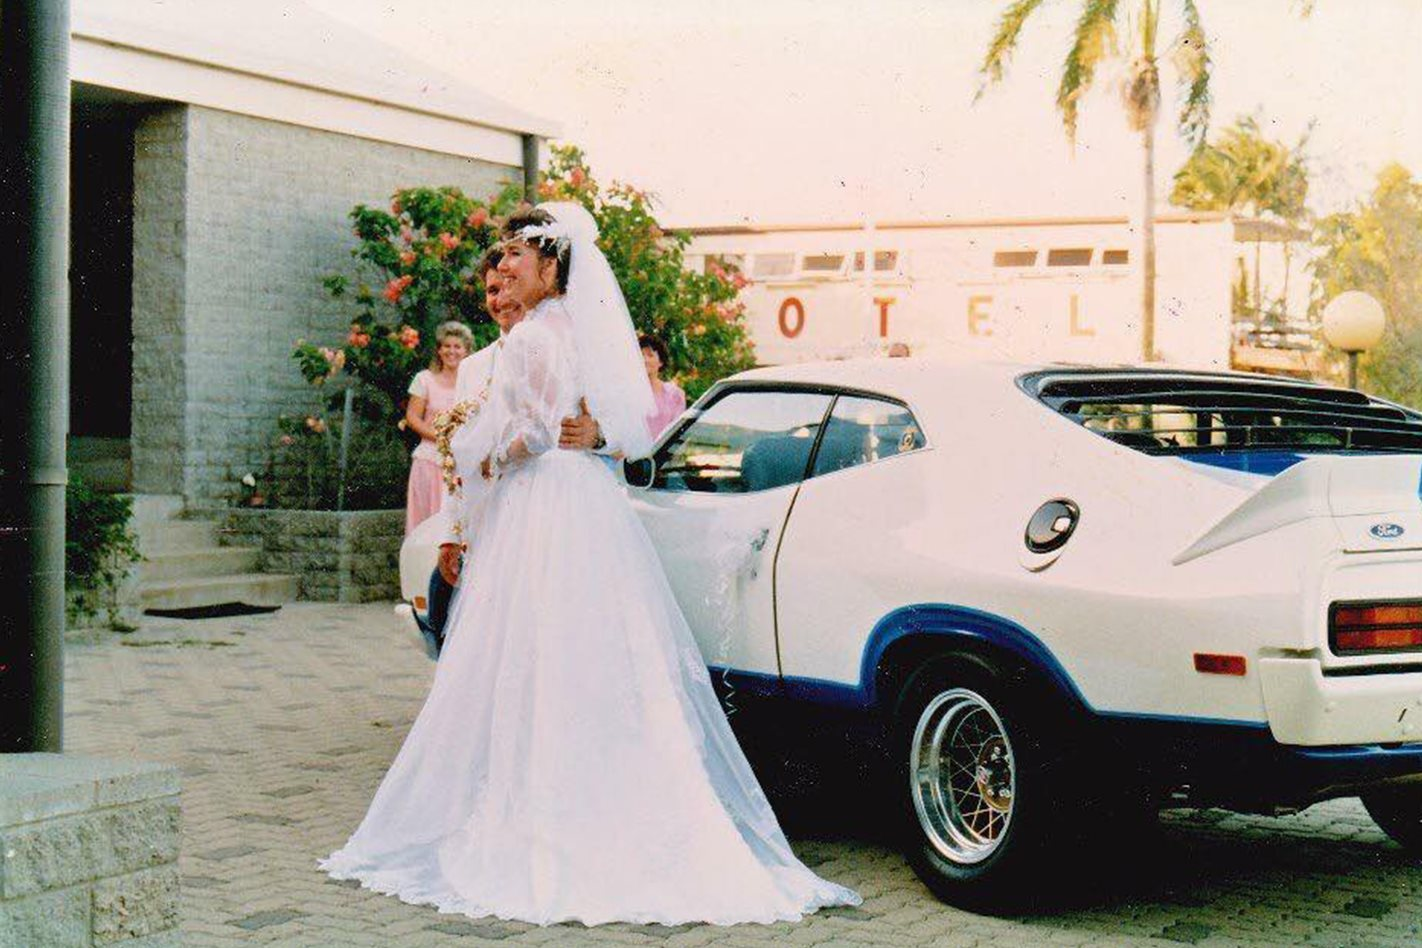 Mandy Paton's wedding cars